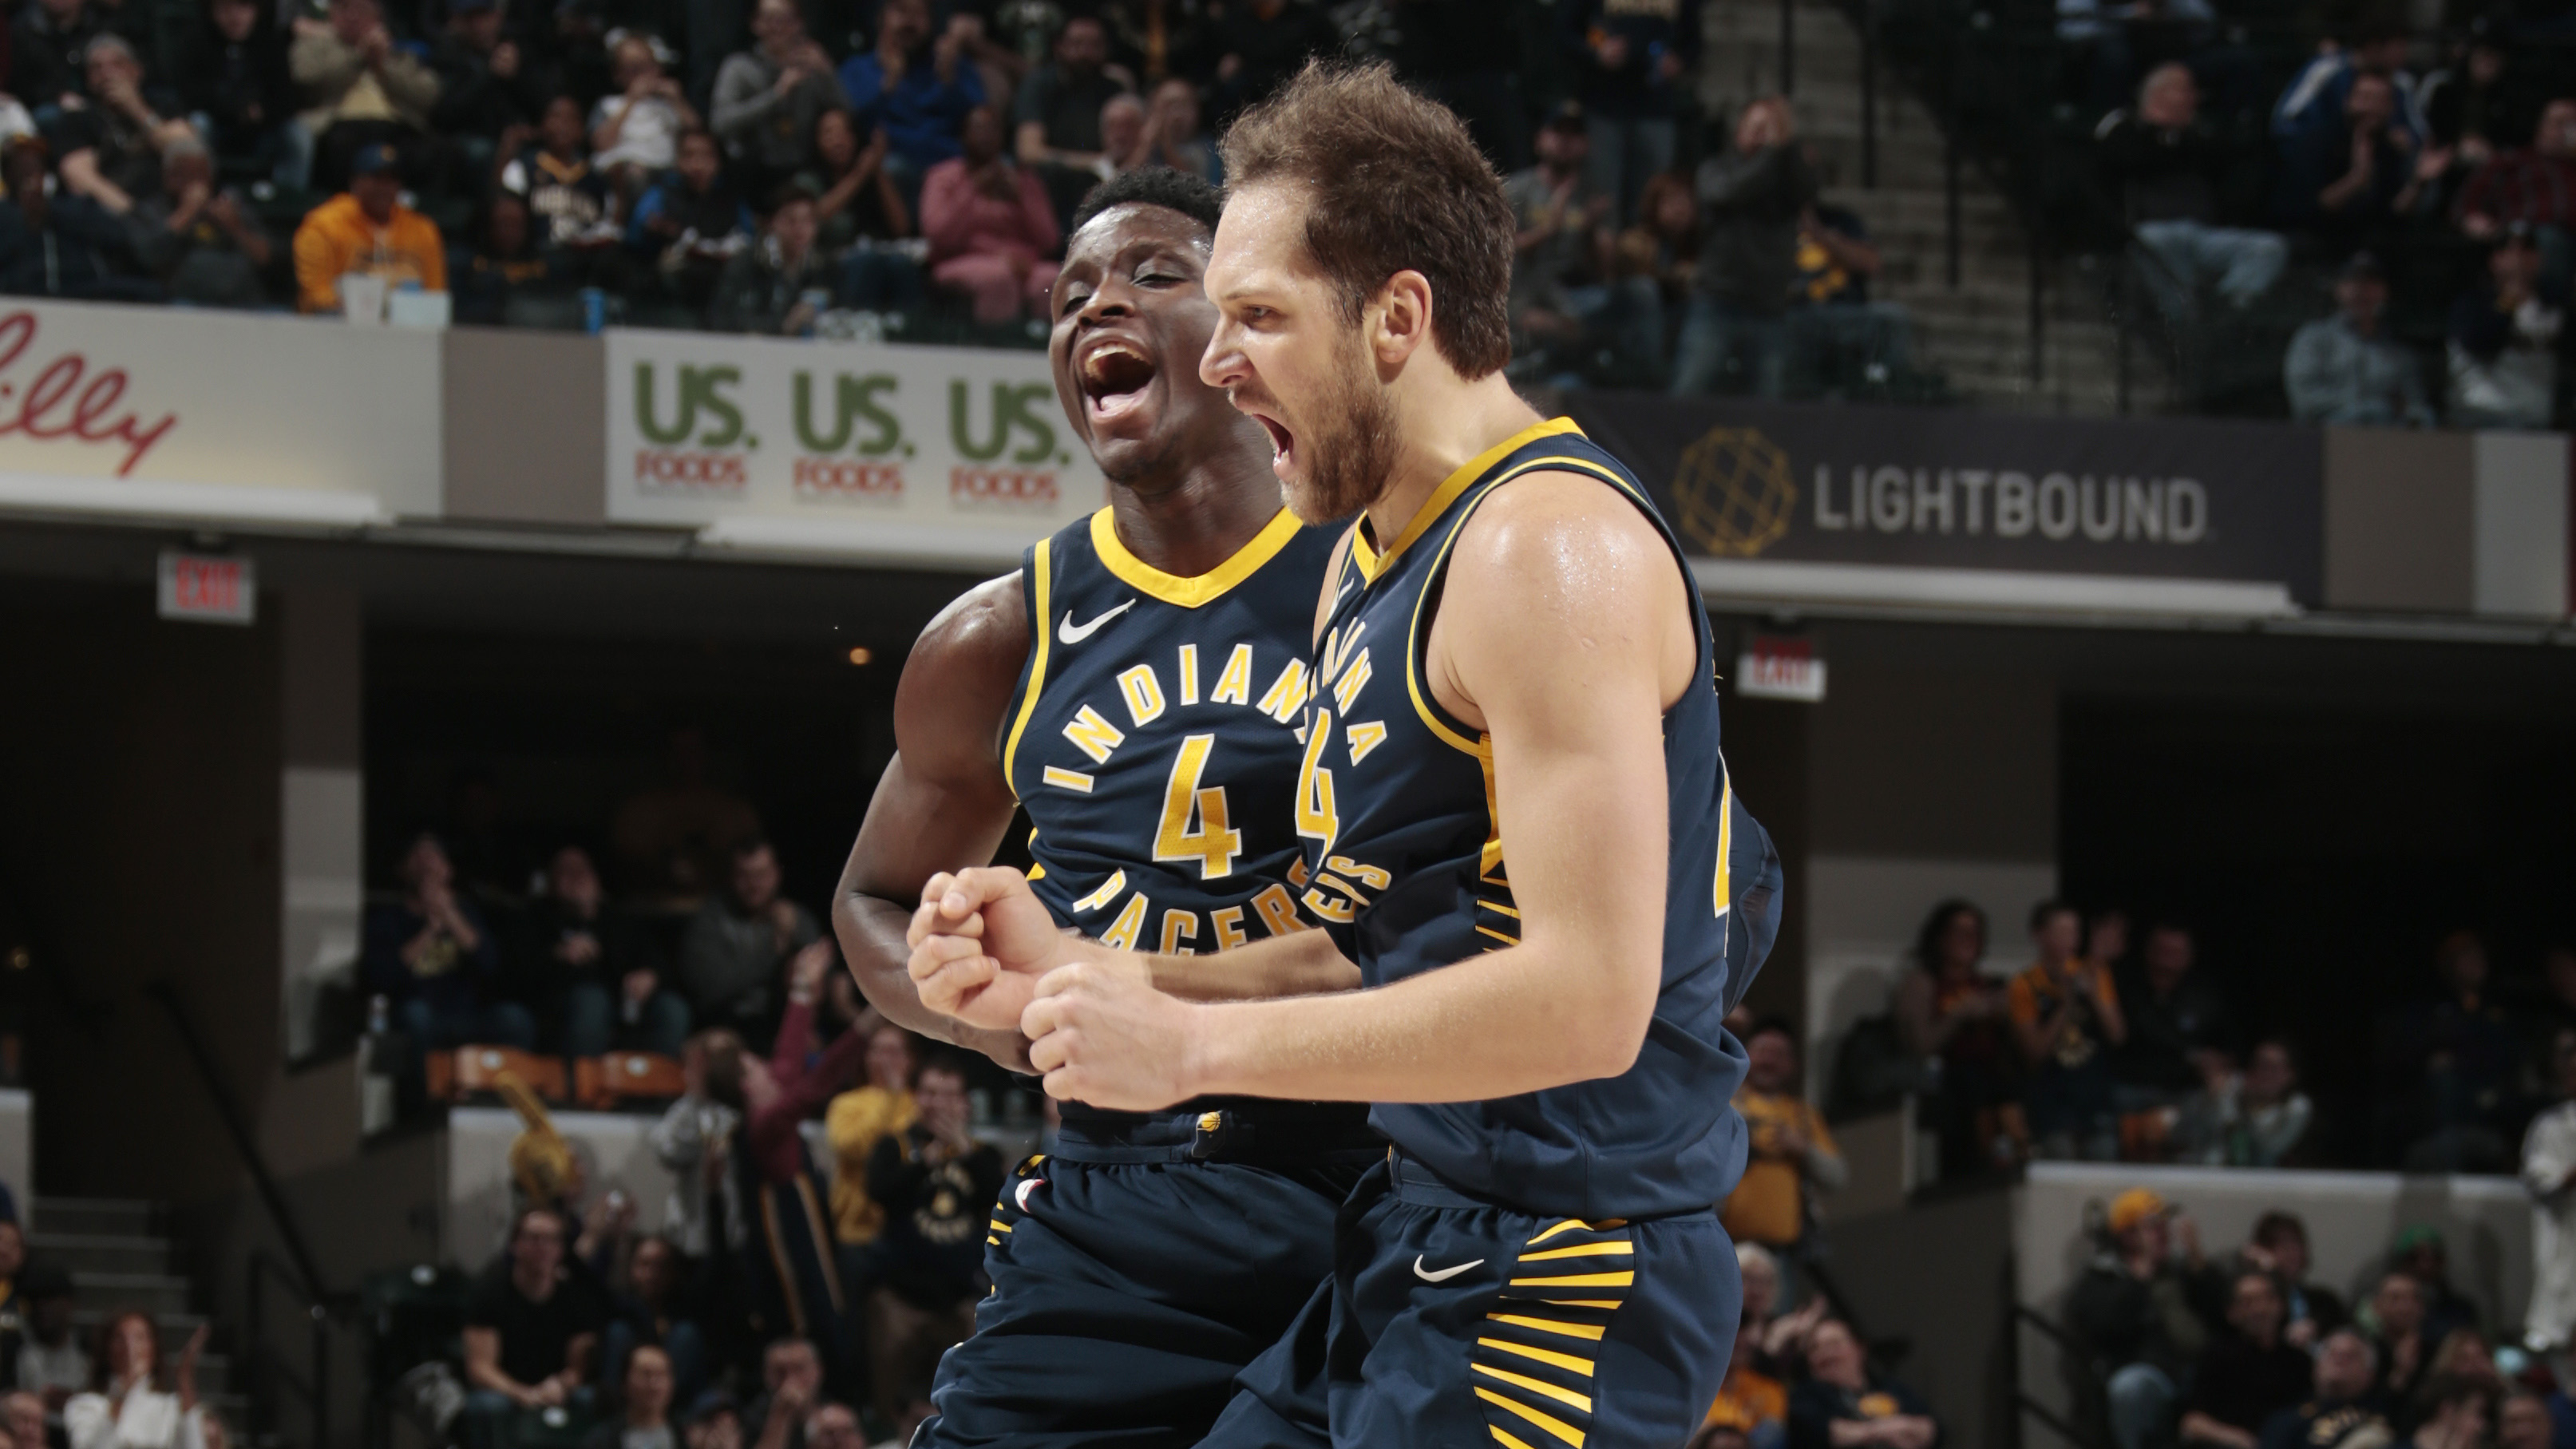 GAME RECAP: Pacers 92, Bucks 89